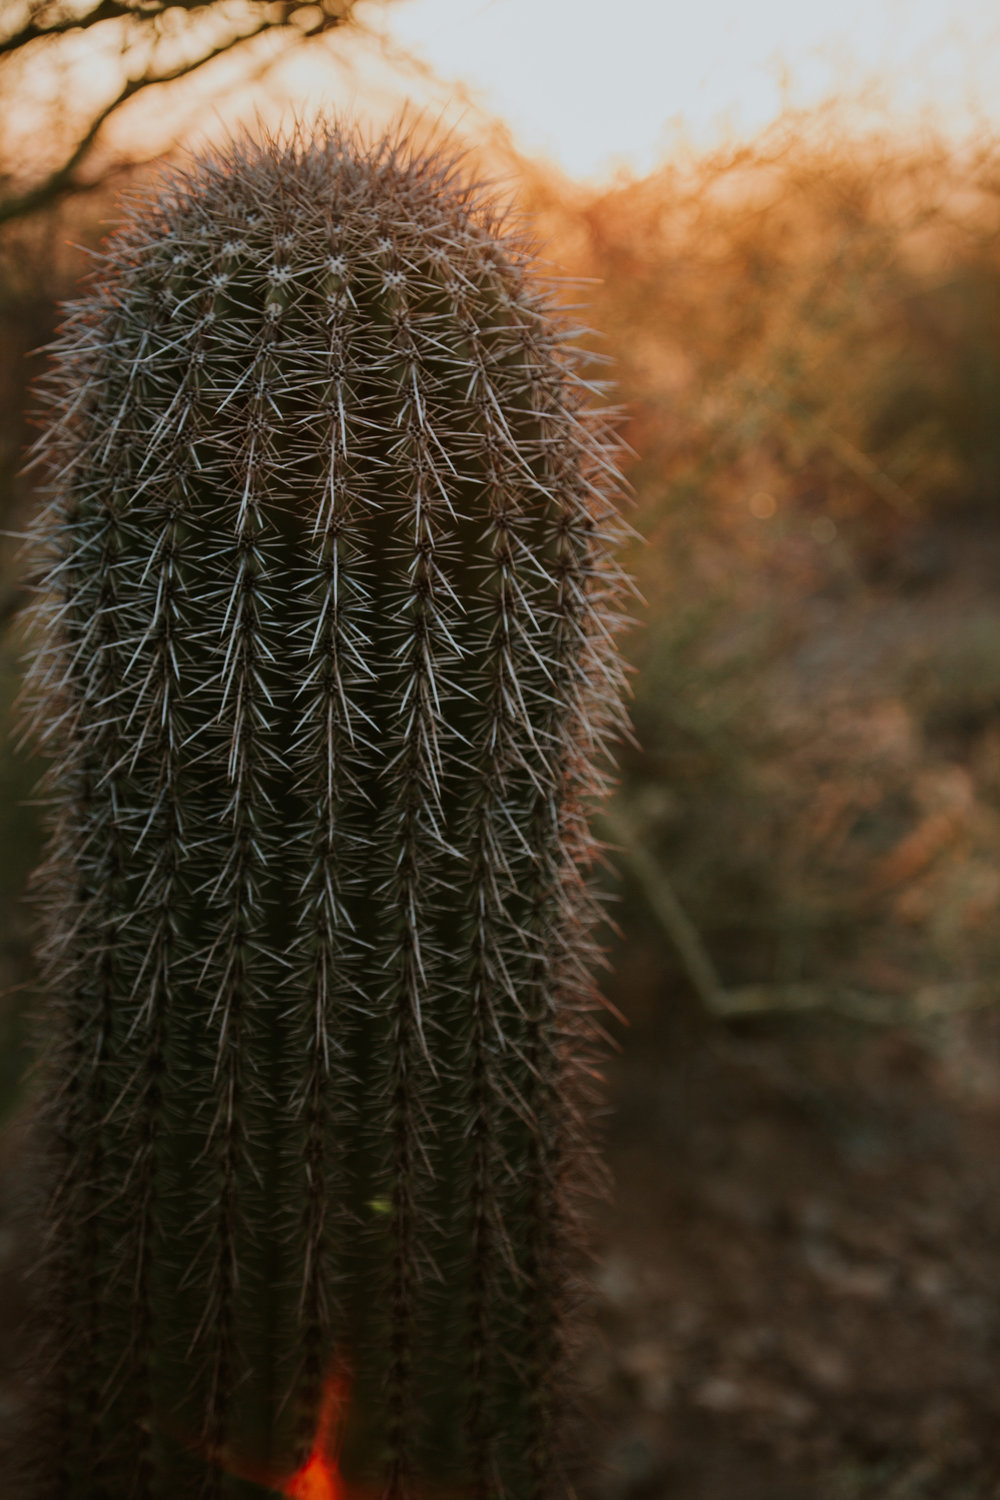 CindyGiovagnoli_Tucson_Arizona_Saguaro_National_Park_cactus_sunset_blooming_spring_sunset_petroglyphs_Native_American_indigenous-015.jpg